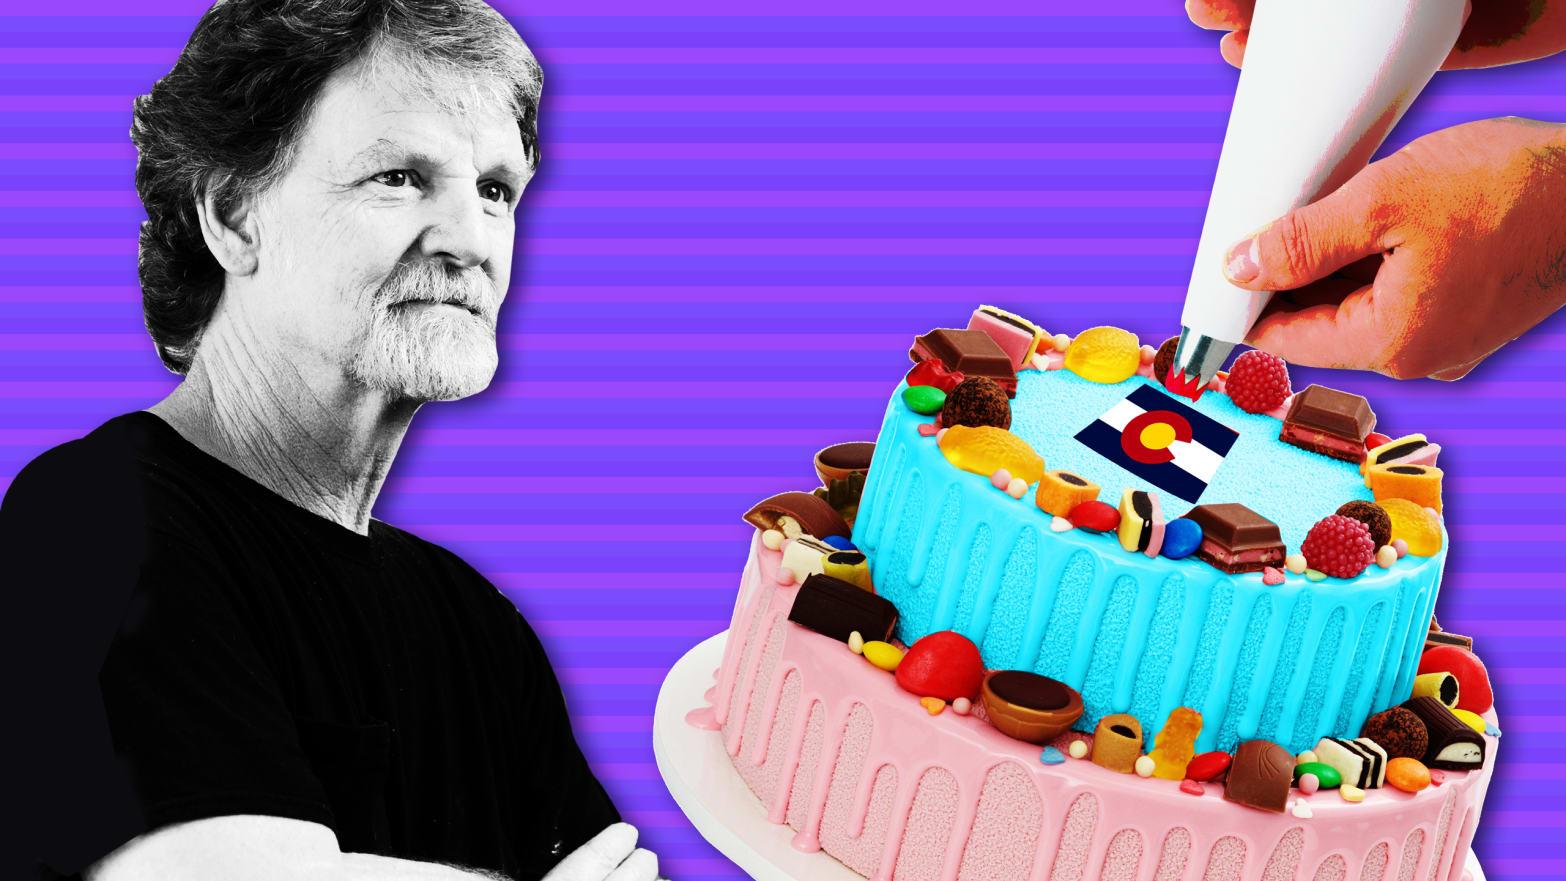 The Masterpiece Baker Is Back Now He Wont Make A Trans Themed Cake